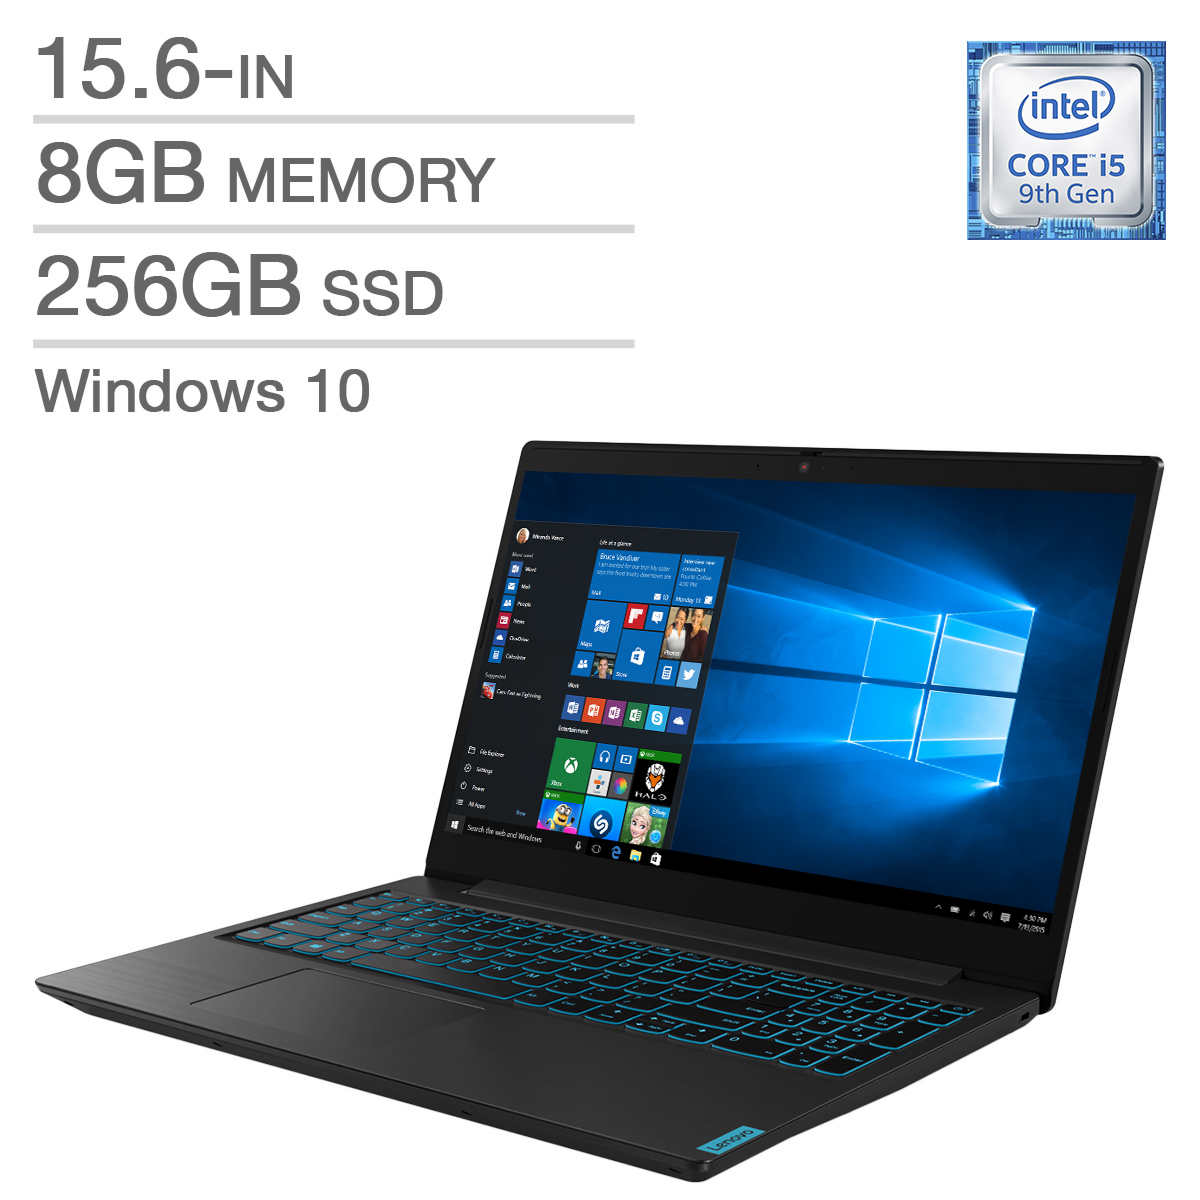 Lenovo IdeaPad L340 15 Gaming Laptop, i5-9300H